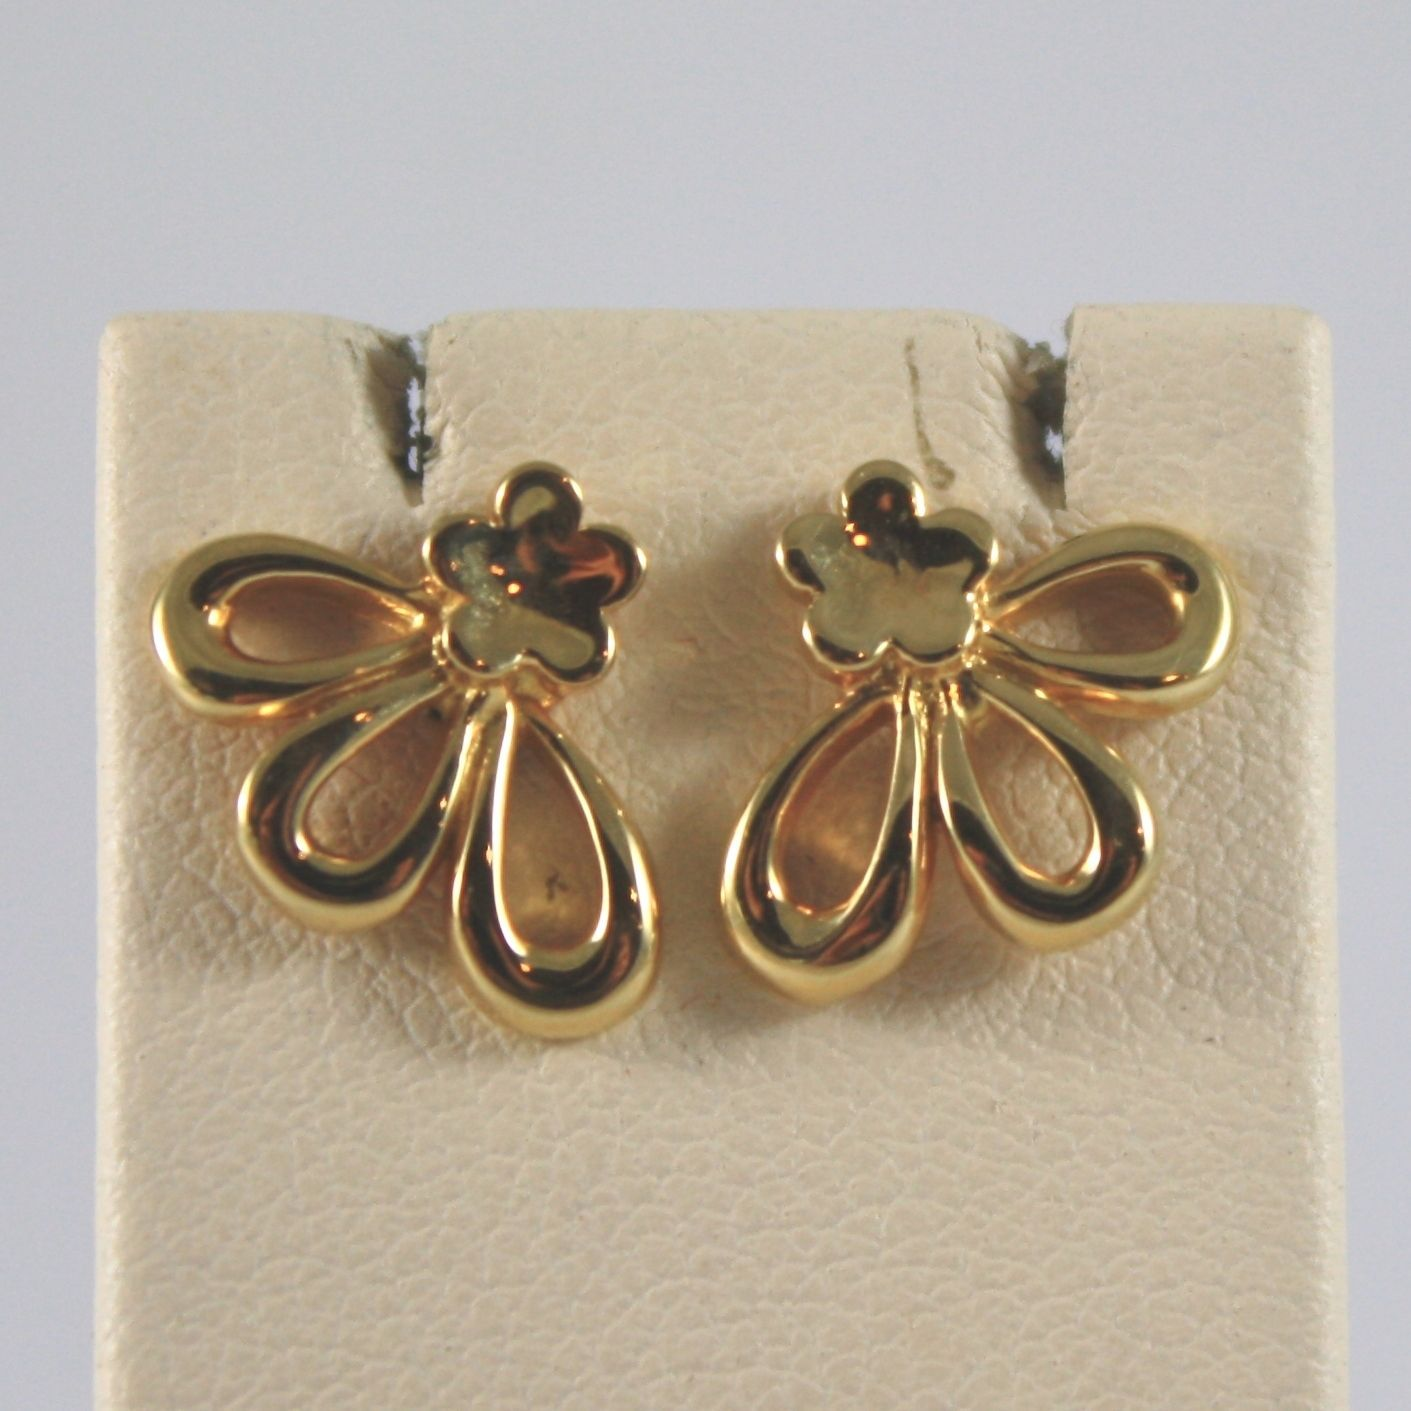 18K SOLID YELLOW GOLD  EARRINGS WITH FLOWER FLOWERS MADE IN ITALY 18K